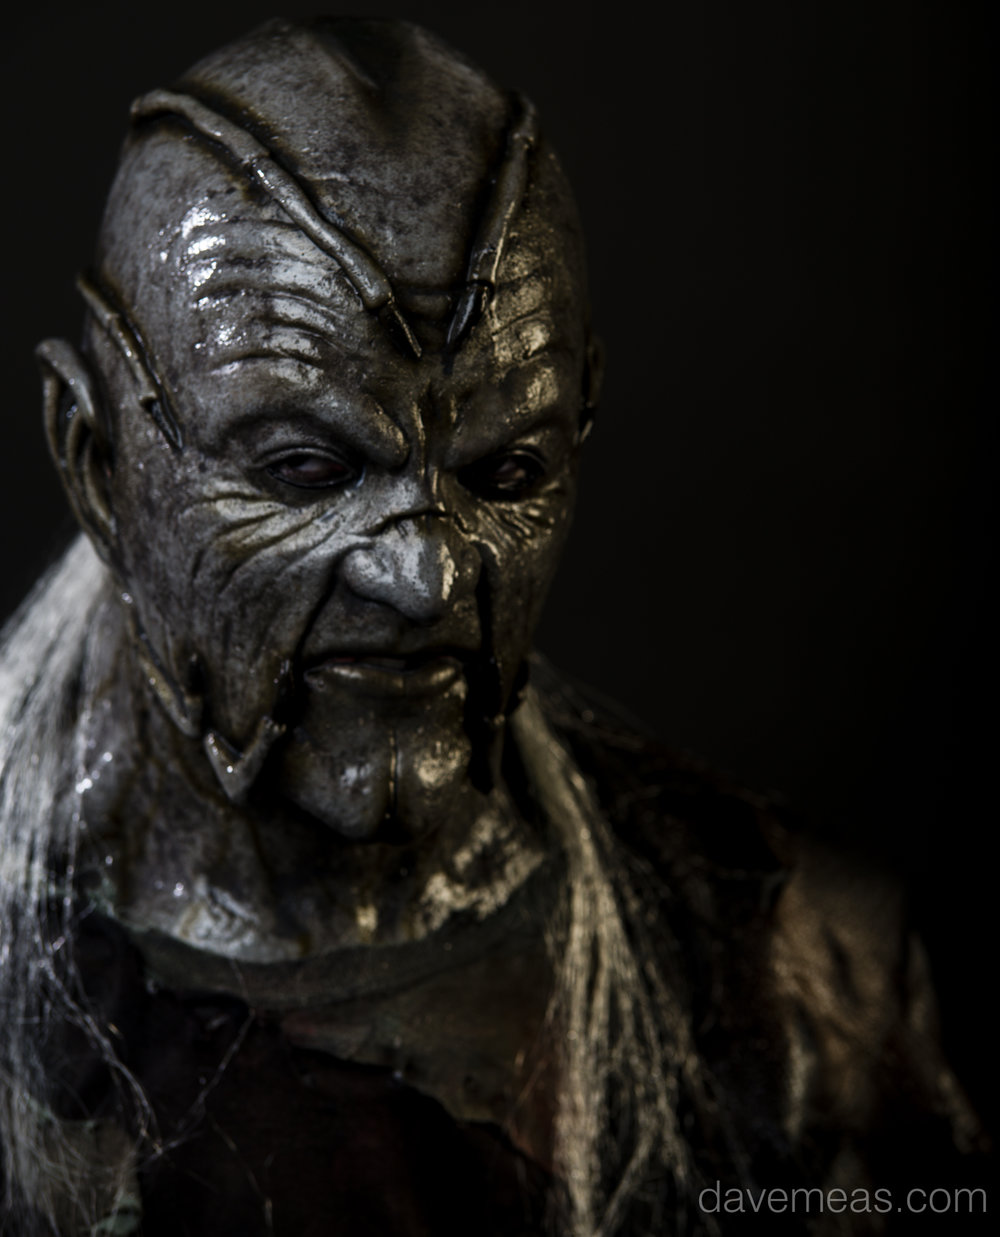 alan jeepers creepers web resolution (3 of 7).jpg